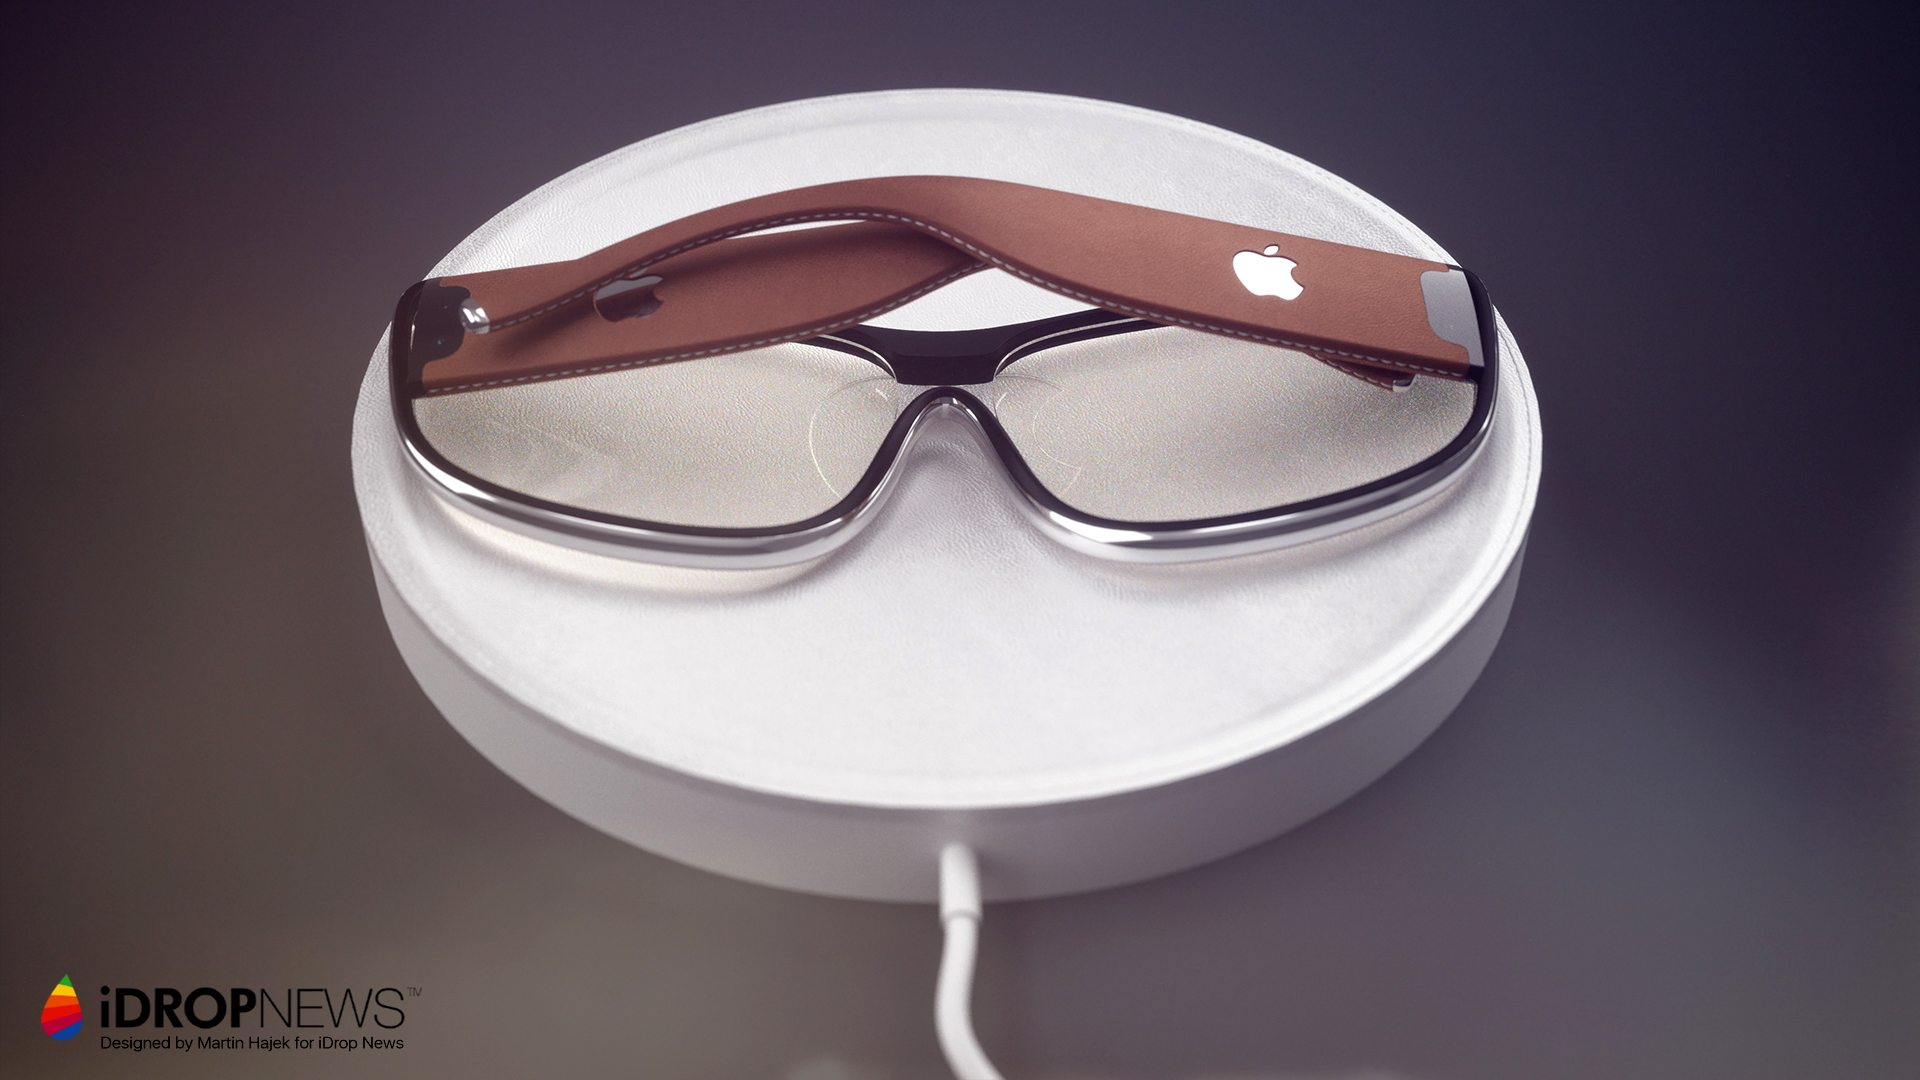 Apple-Glass-AR-Glasses-iDrop-News-x-Martin-Hajek-6jpg